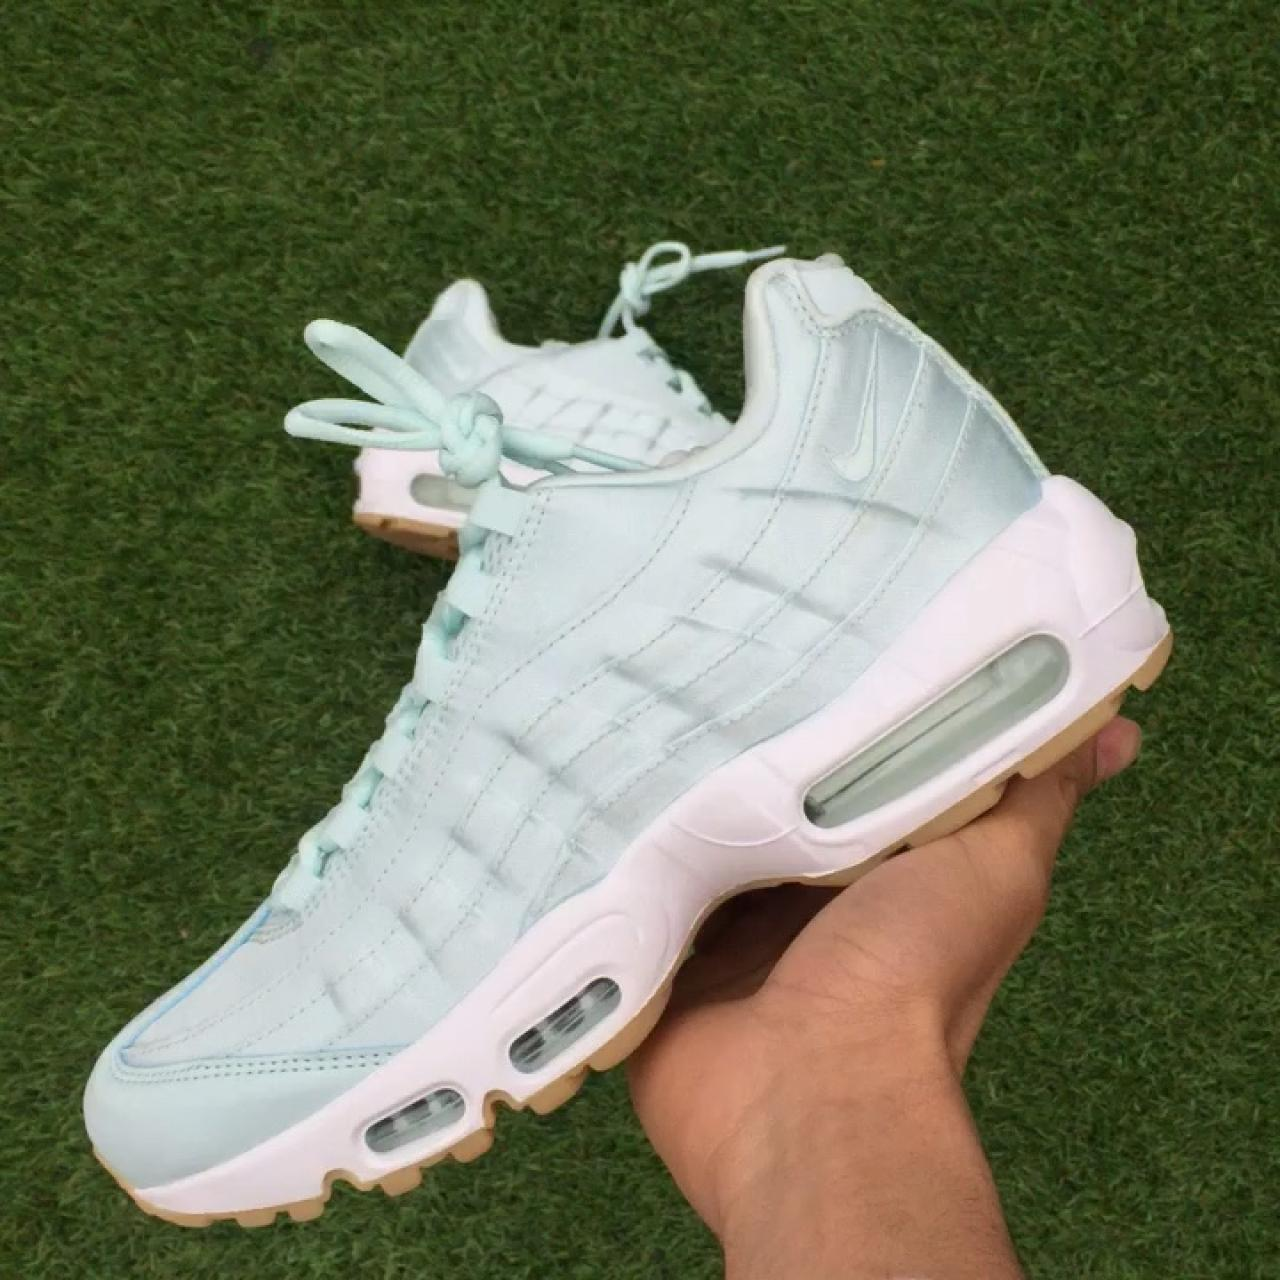 buy online e2575 fef36 Nike Air Max 95 Glacier Blue QS ❄️ Brand new with... - Depop